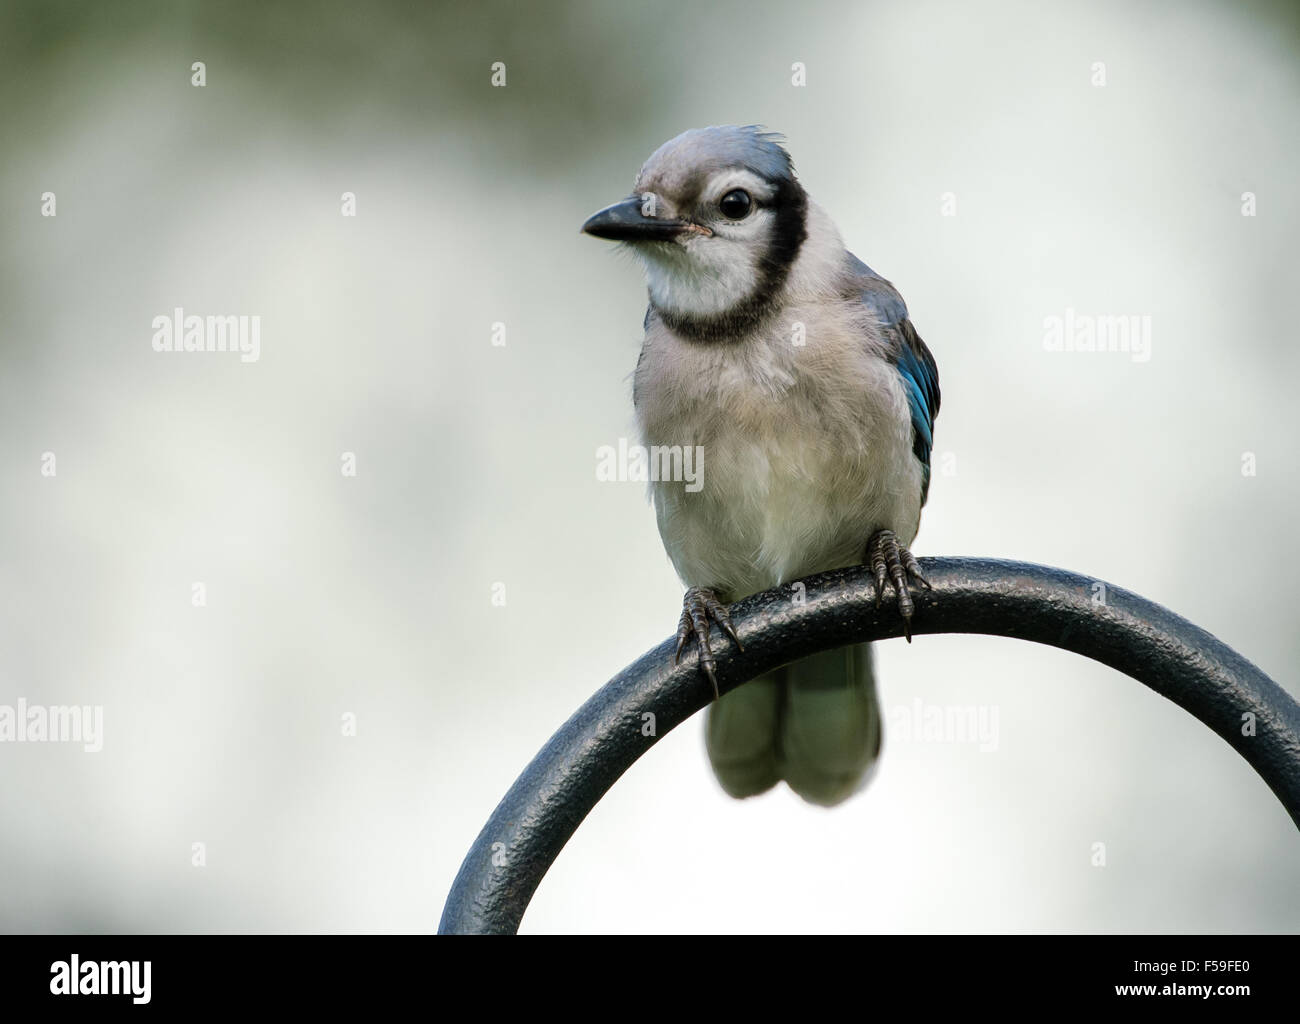 Blue Jay (Cyanocitta cristata), Garden Wellington, Florida, USA Stock Photo